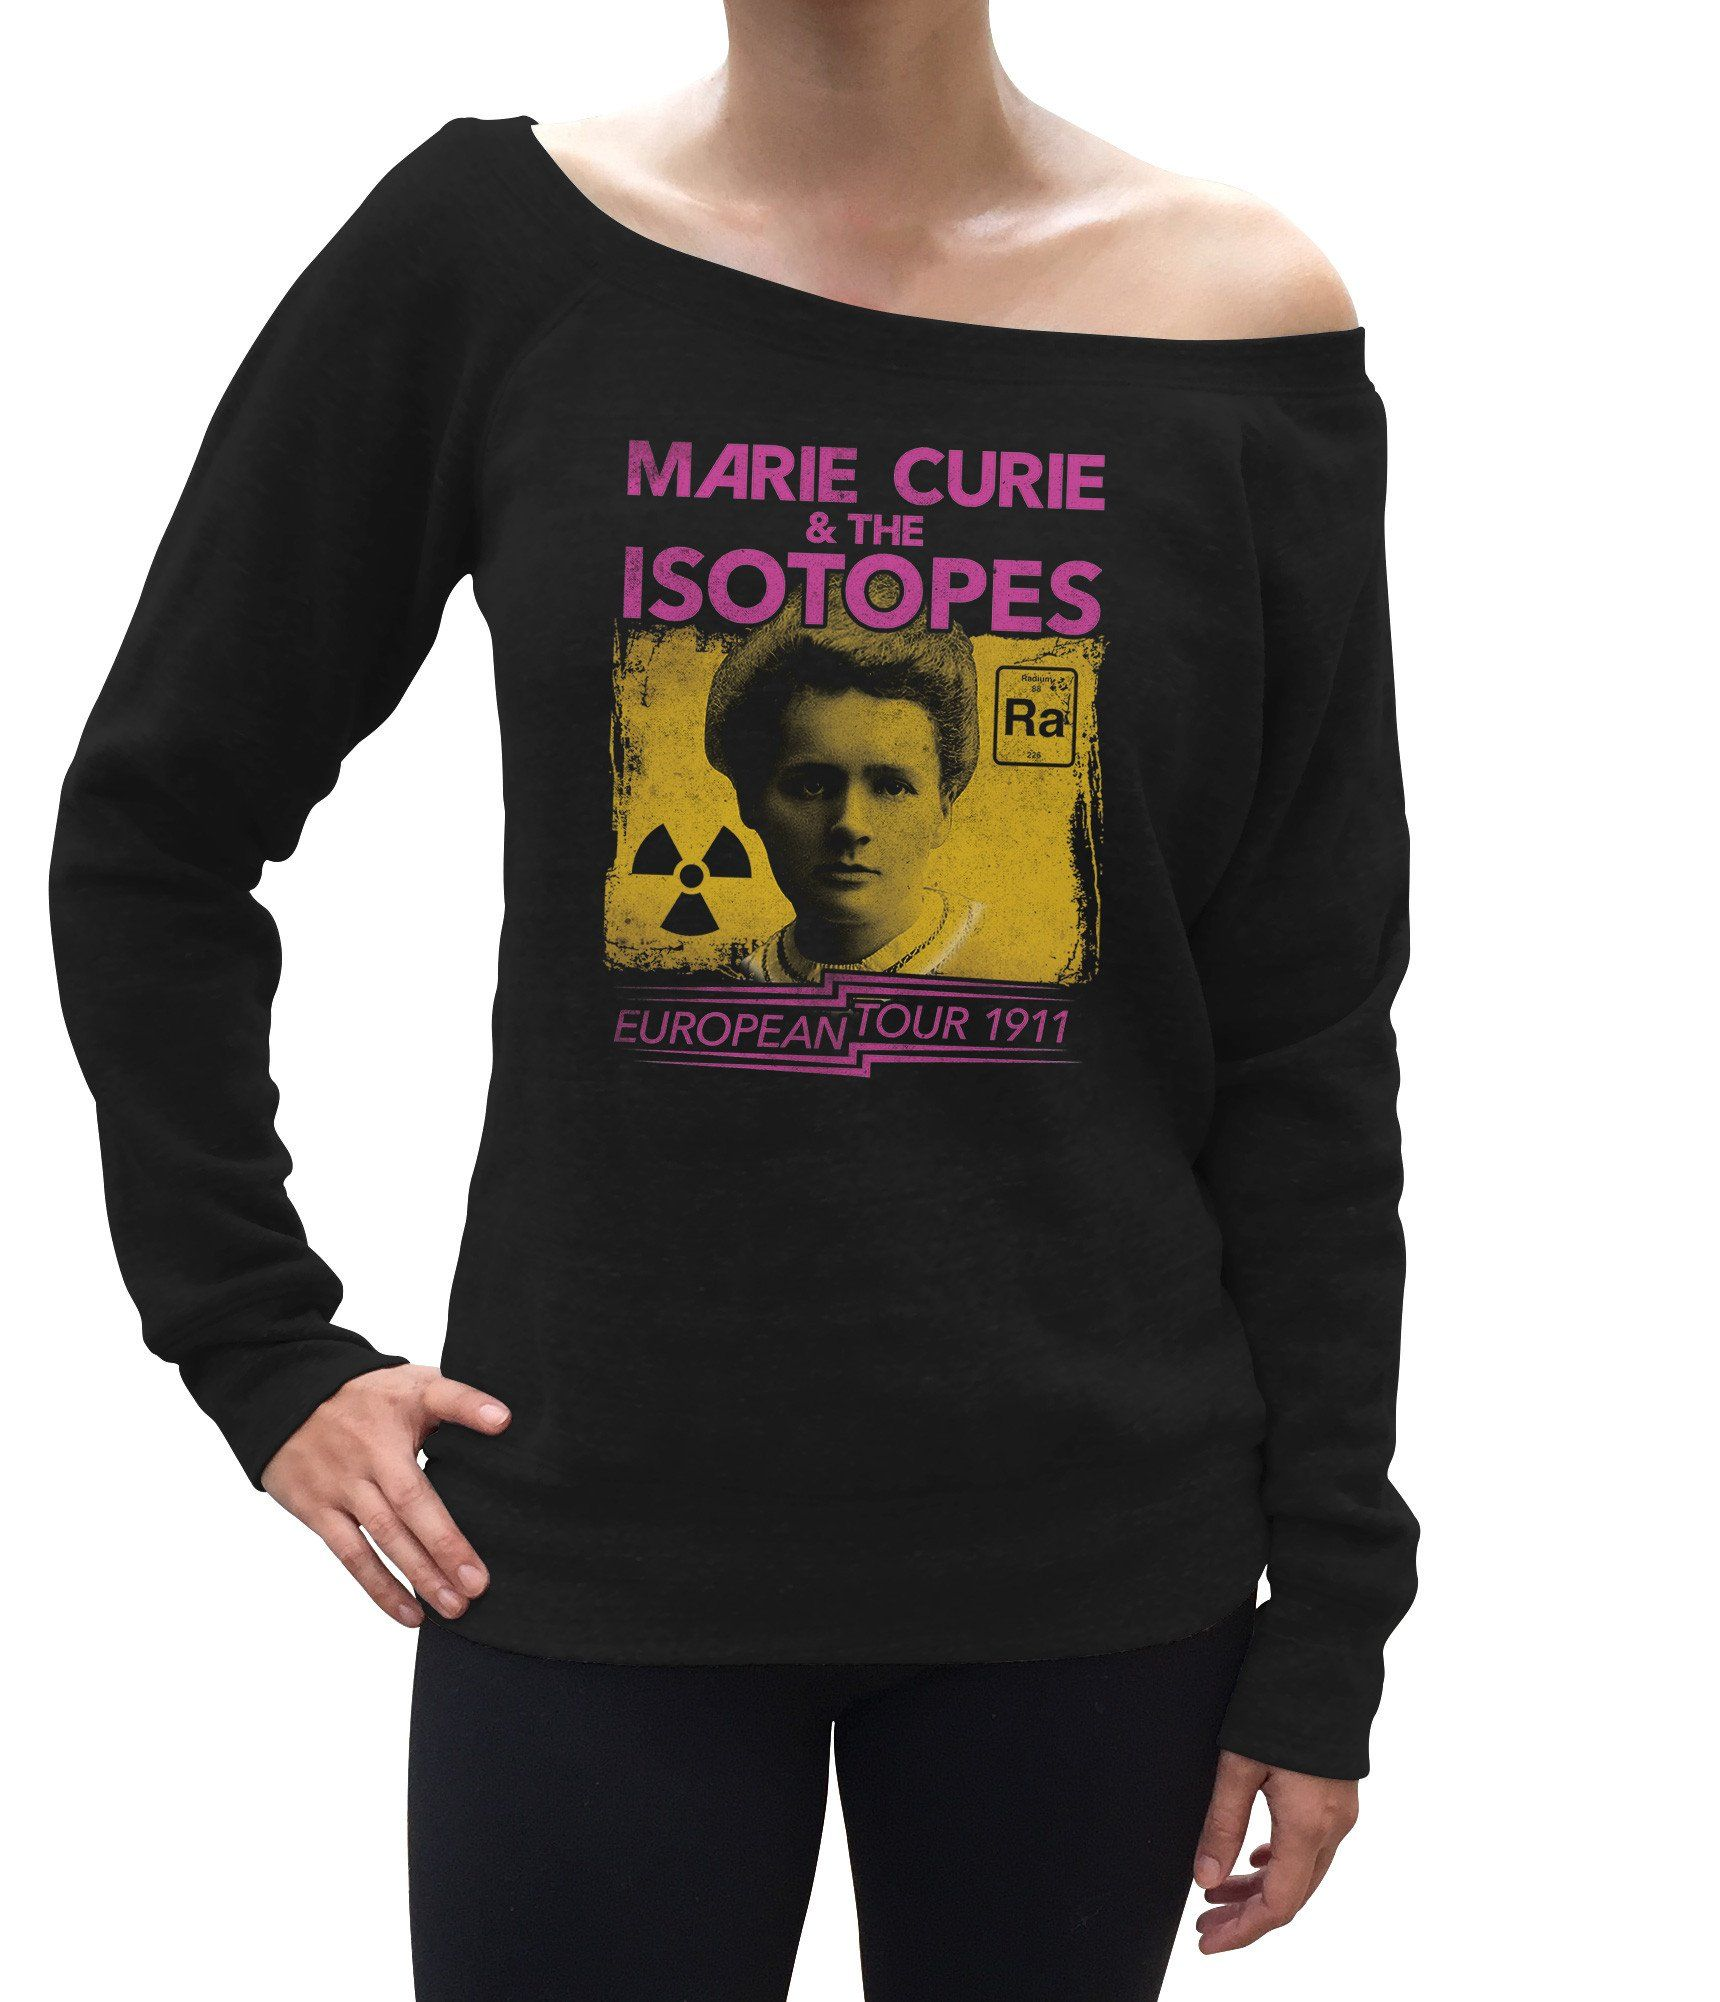 f82b800d We've re-imagined legendary female scientist Marie Curie as a science rock  star, backed by her band The Isotopes! Celebrate women in science with this  ...